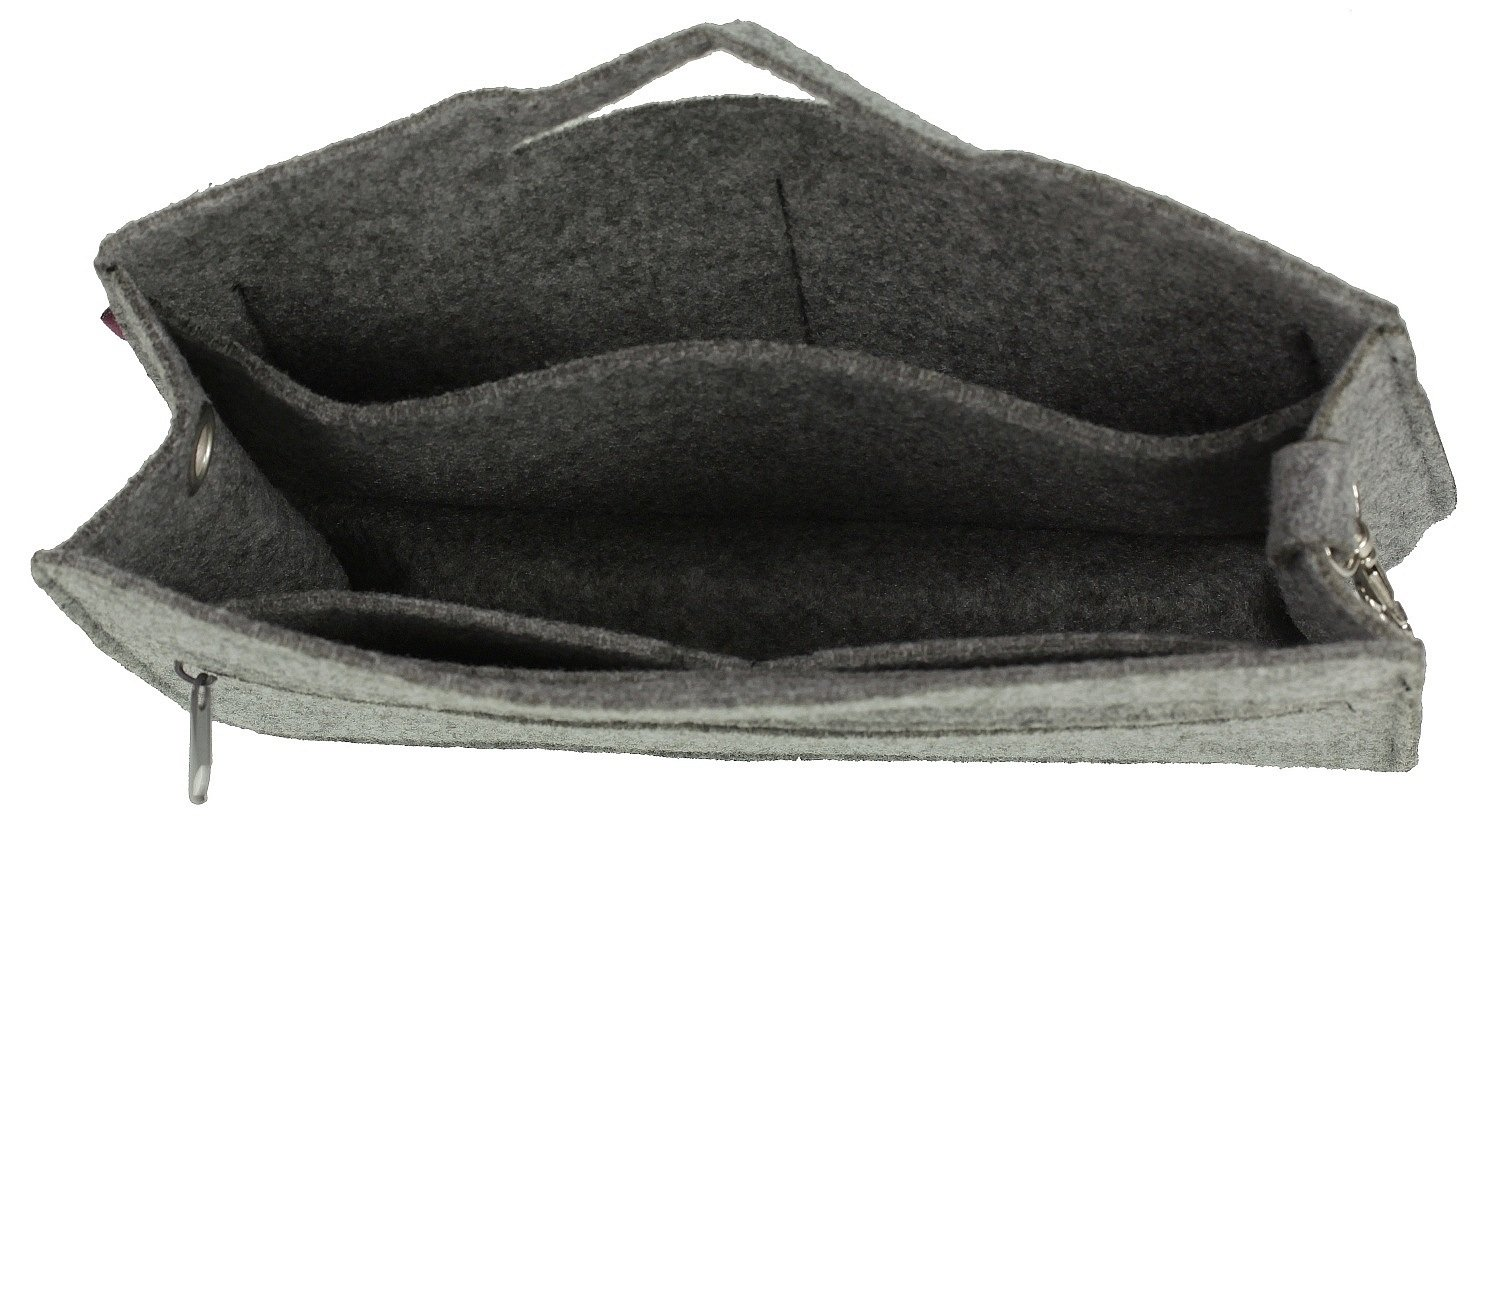 Grey Bag Organizer Design TULIPS Felt